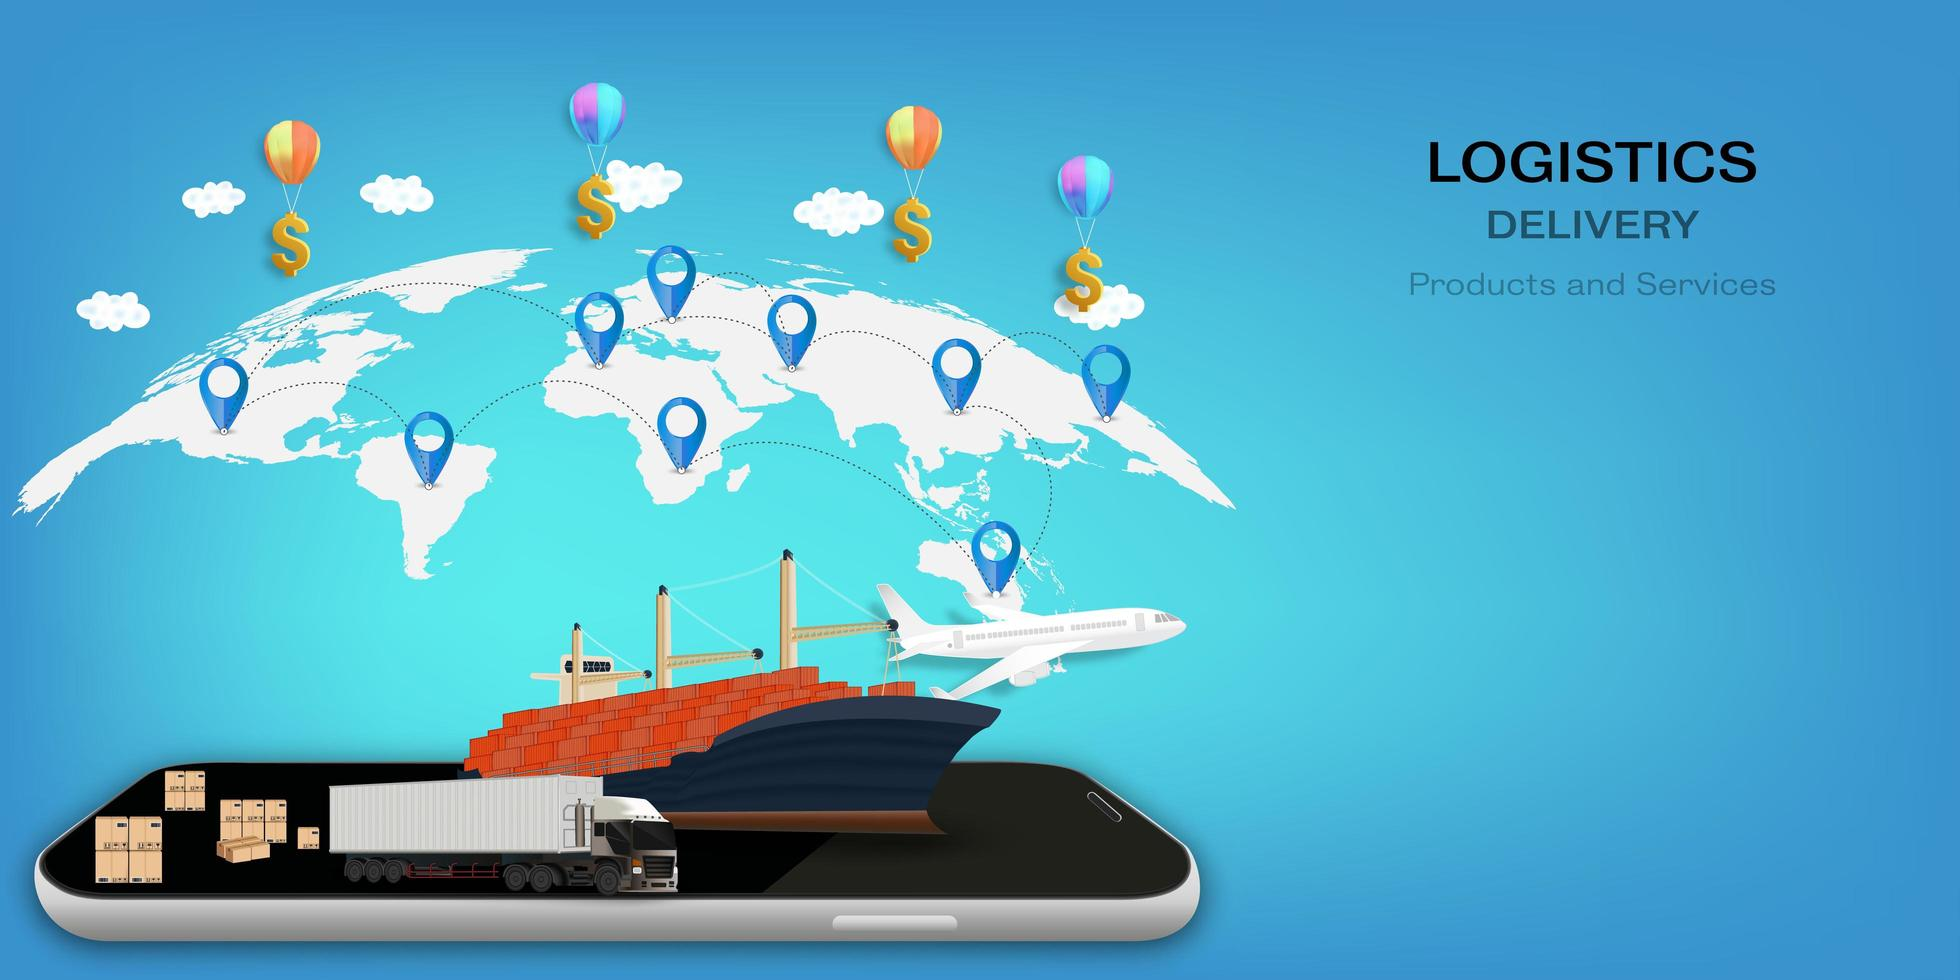 Logistics on mobile and delivery concept vector